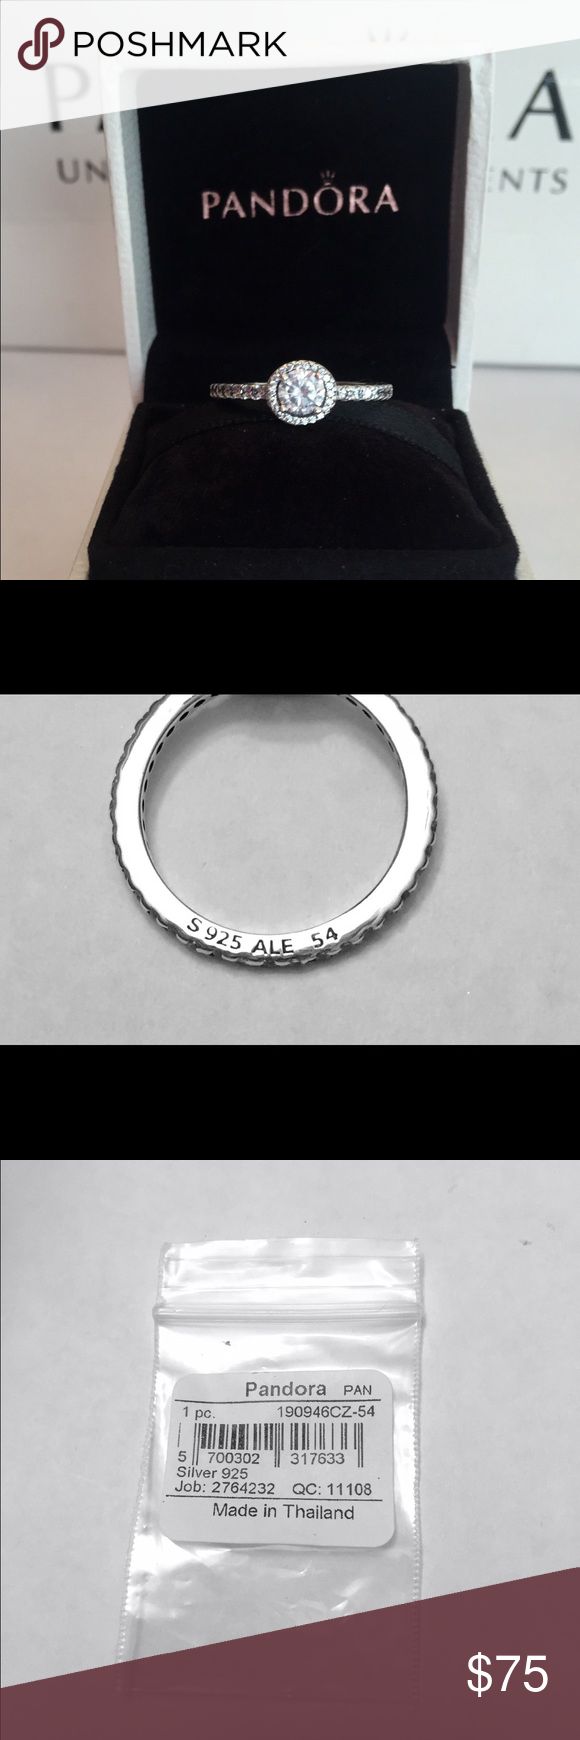 1f1d4020f Authentic Pandora Classic Elegance Ring W/ Tags. Sterling Silver with Cz's.  Hallmark Stamp S 925 ALE. You will receive the Pandora Ring Tag and Pandora  Box.